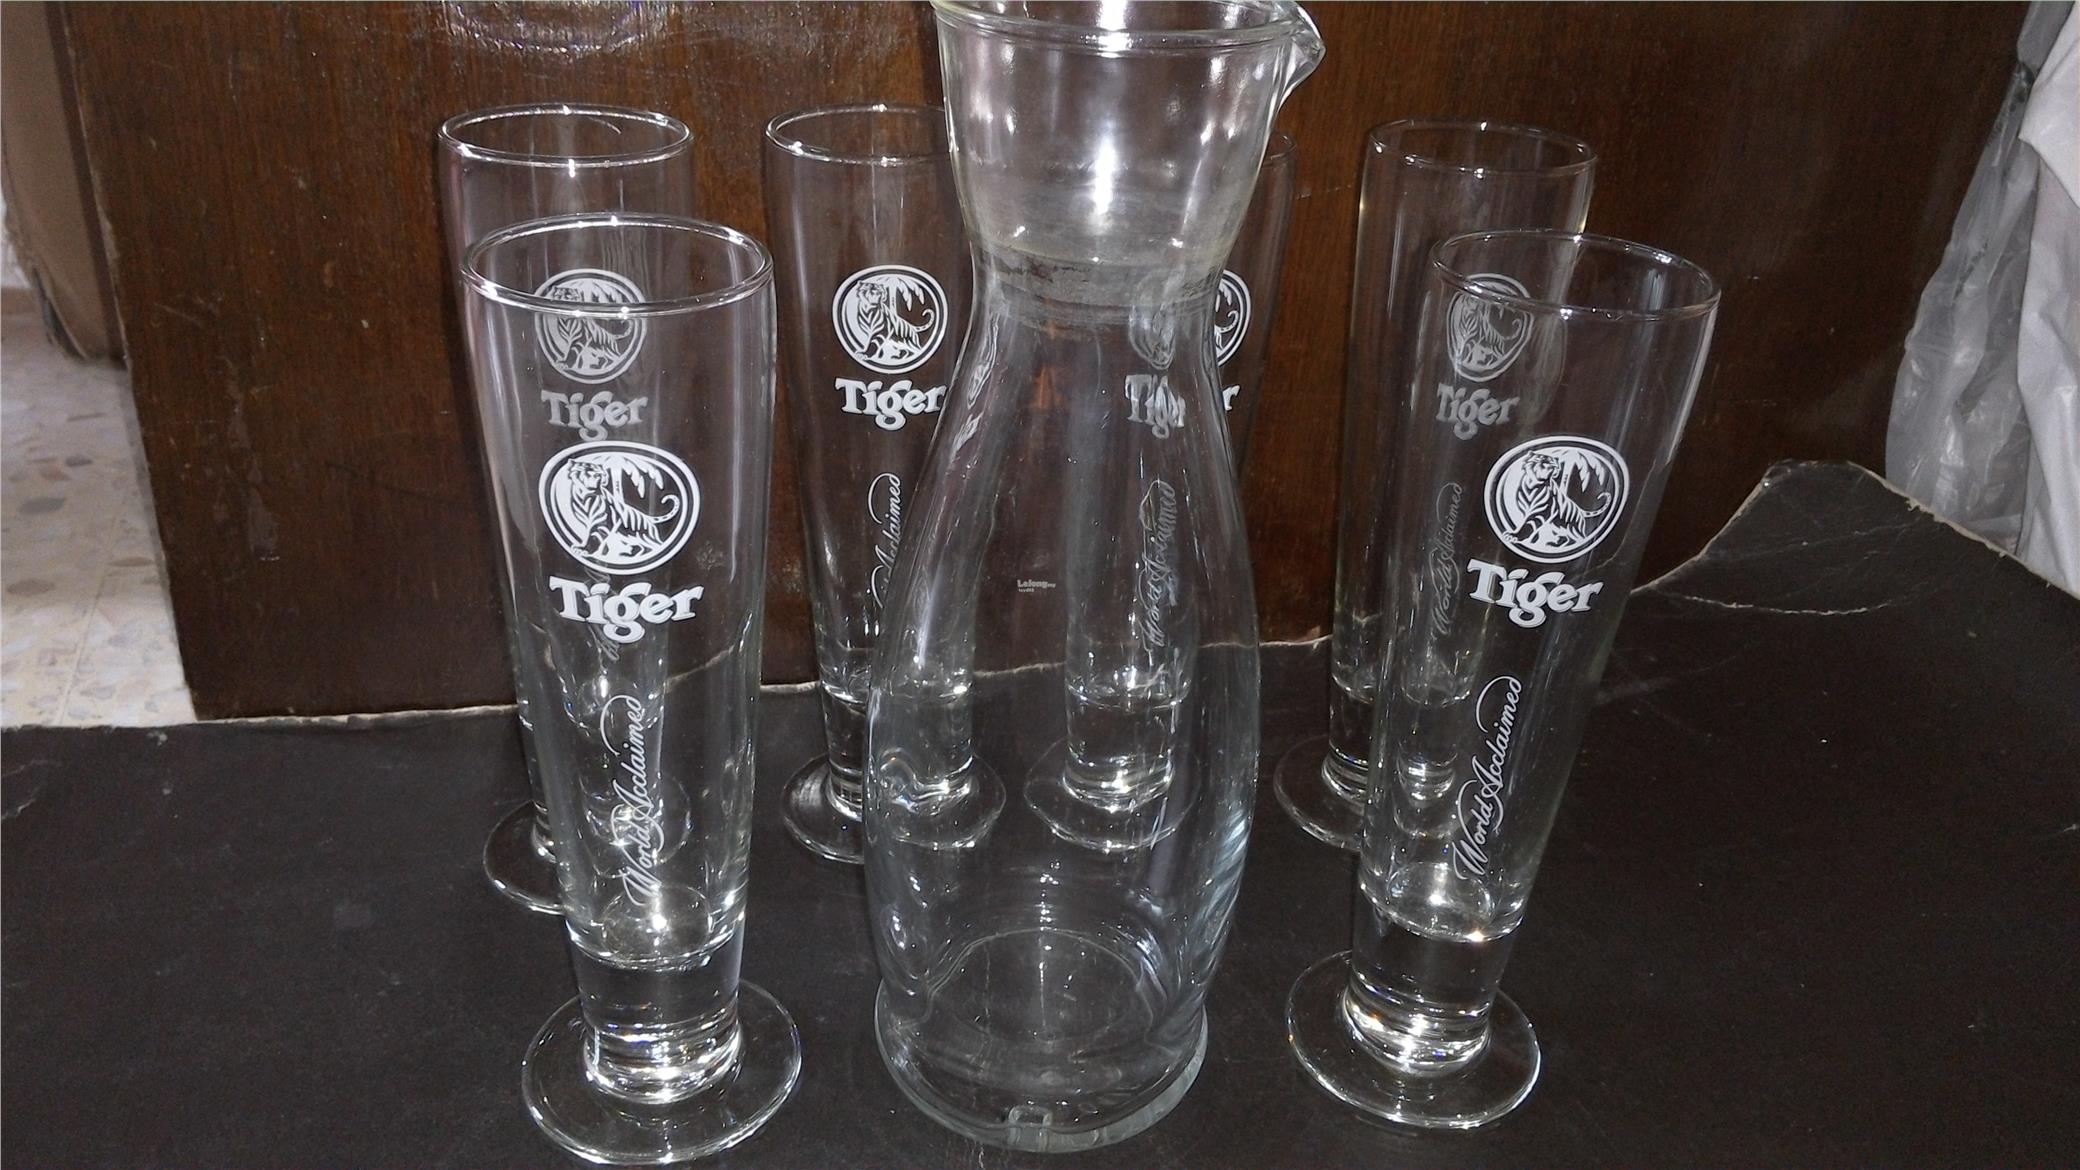 6 TIGER BEER TALL GLASS CUP + 1 JUG (ITALY MADE)